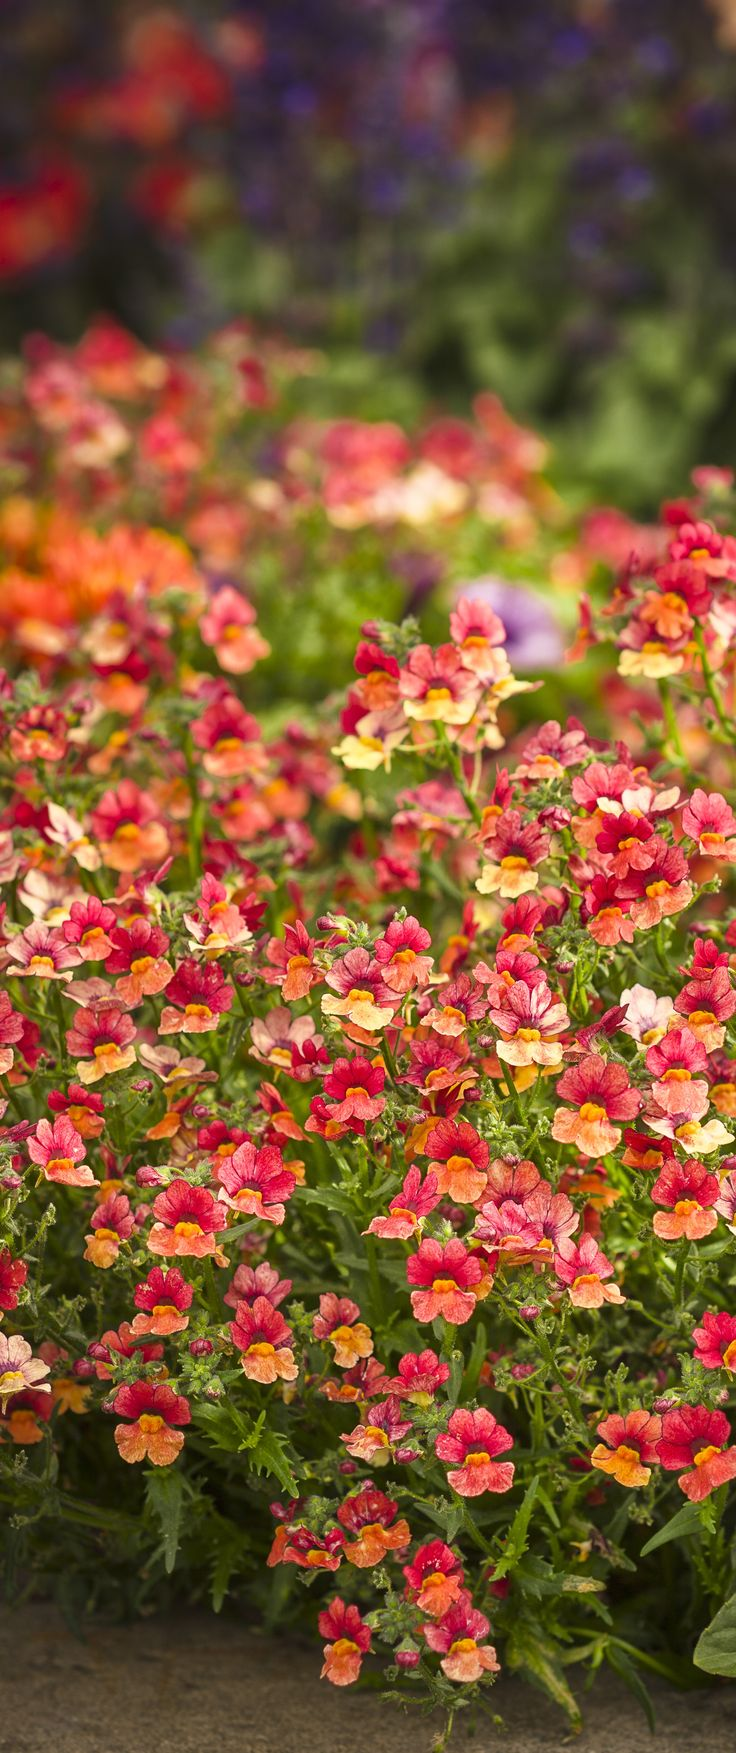 This nemesia is new this spring, and offers a stronger heat tolerance than other cool weather lovers. A striking bloom color is spectacular in the landscape or in containers.